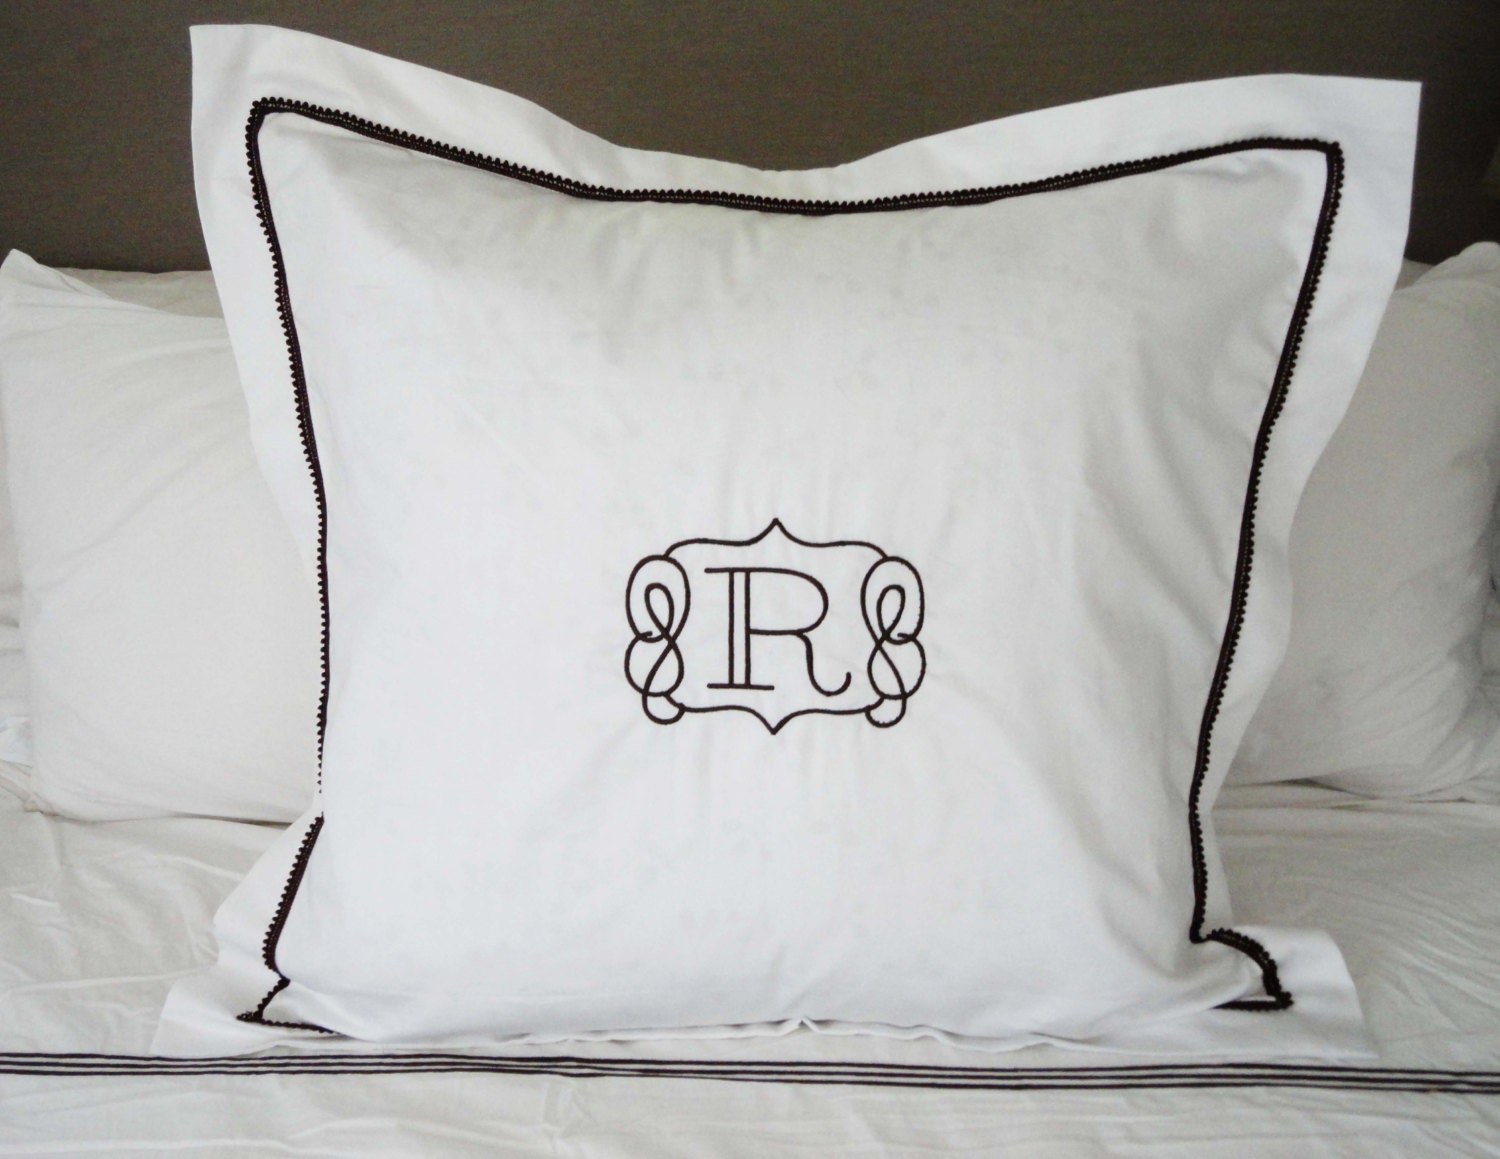 Monogram Euro Pillow Sham With Mini Pom Pom Trim Monogram